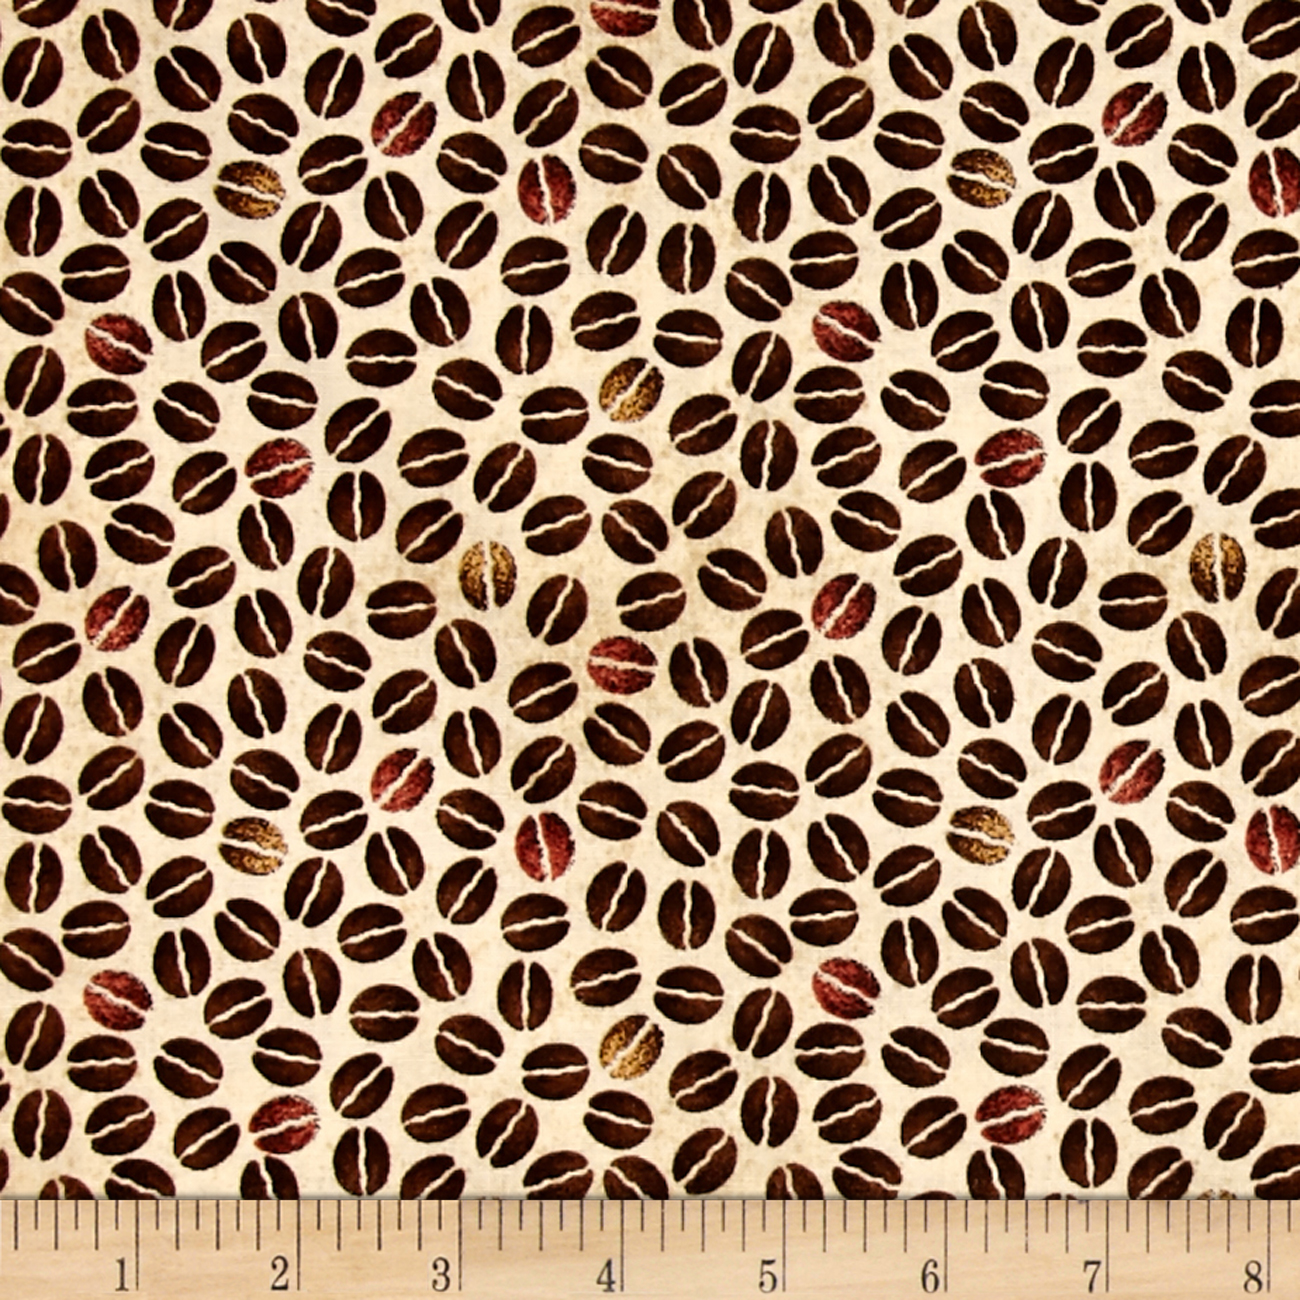 Image of Daily Grind Coffee Beans Beige Fabric